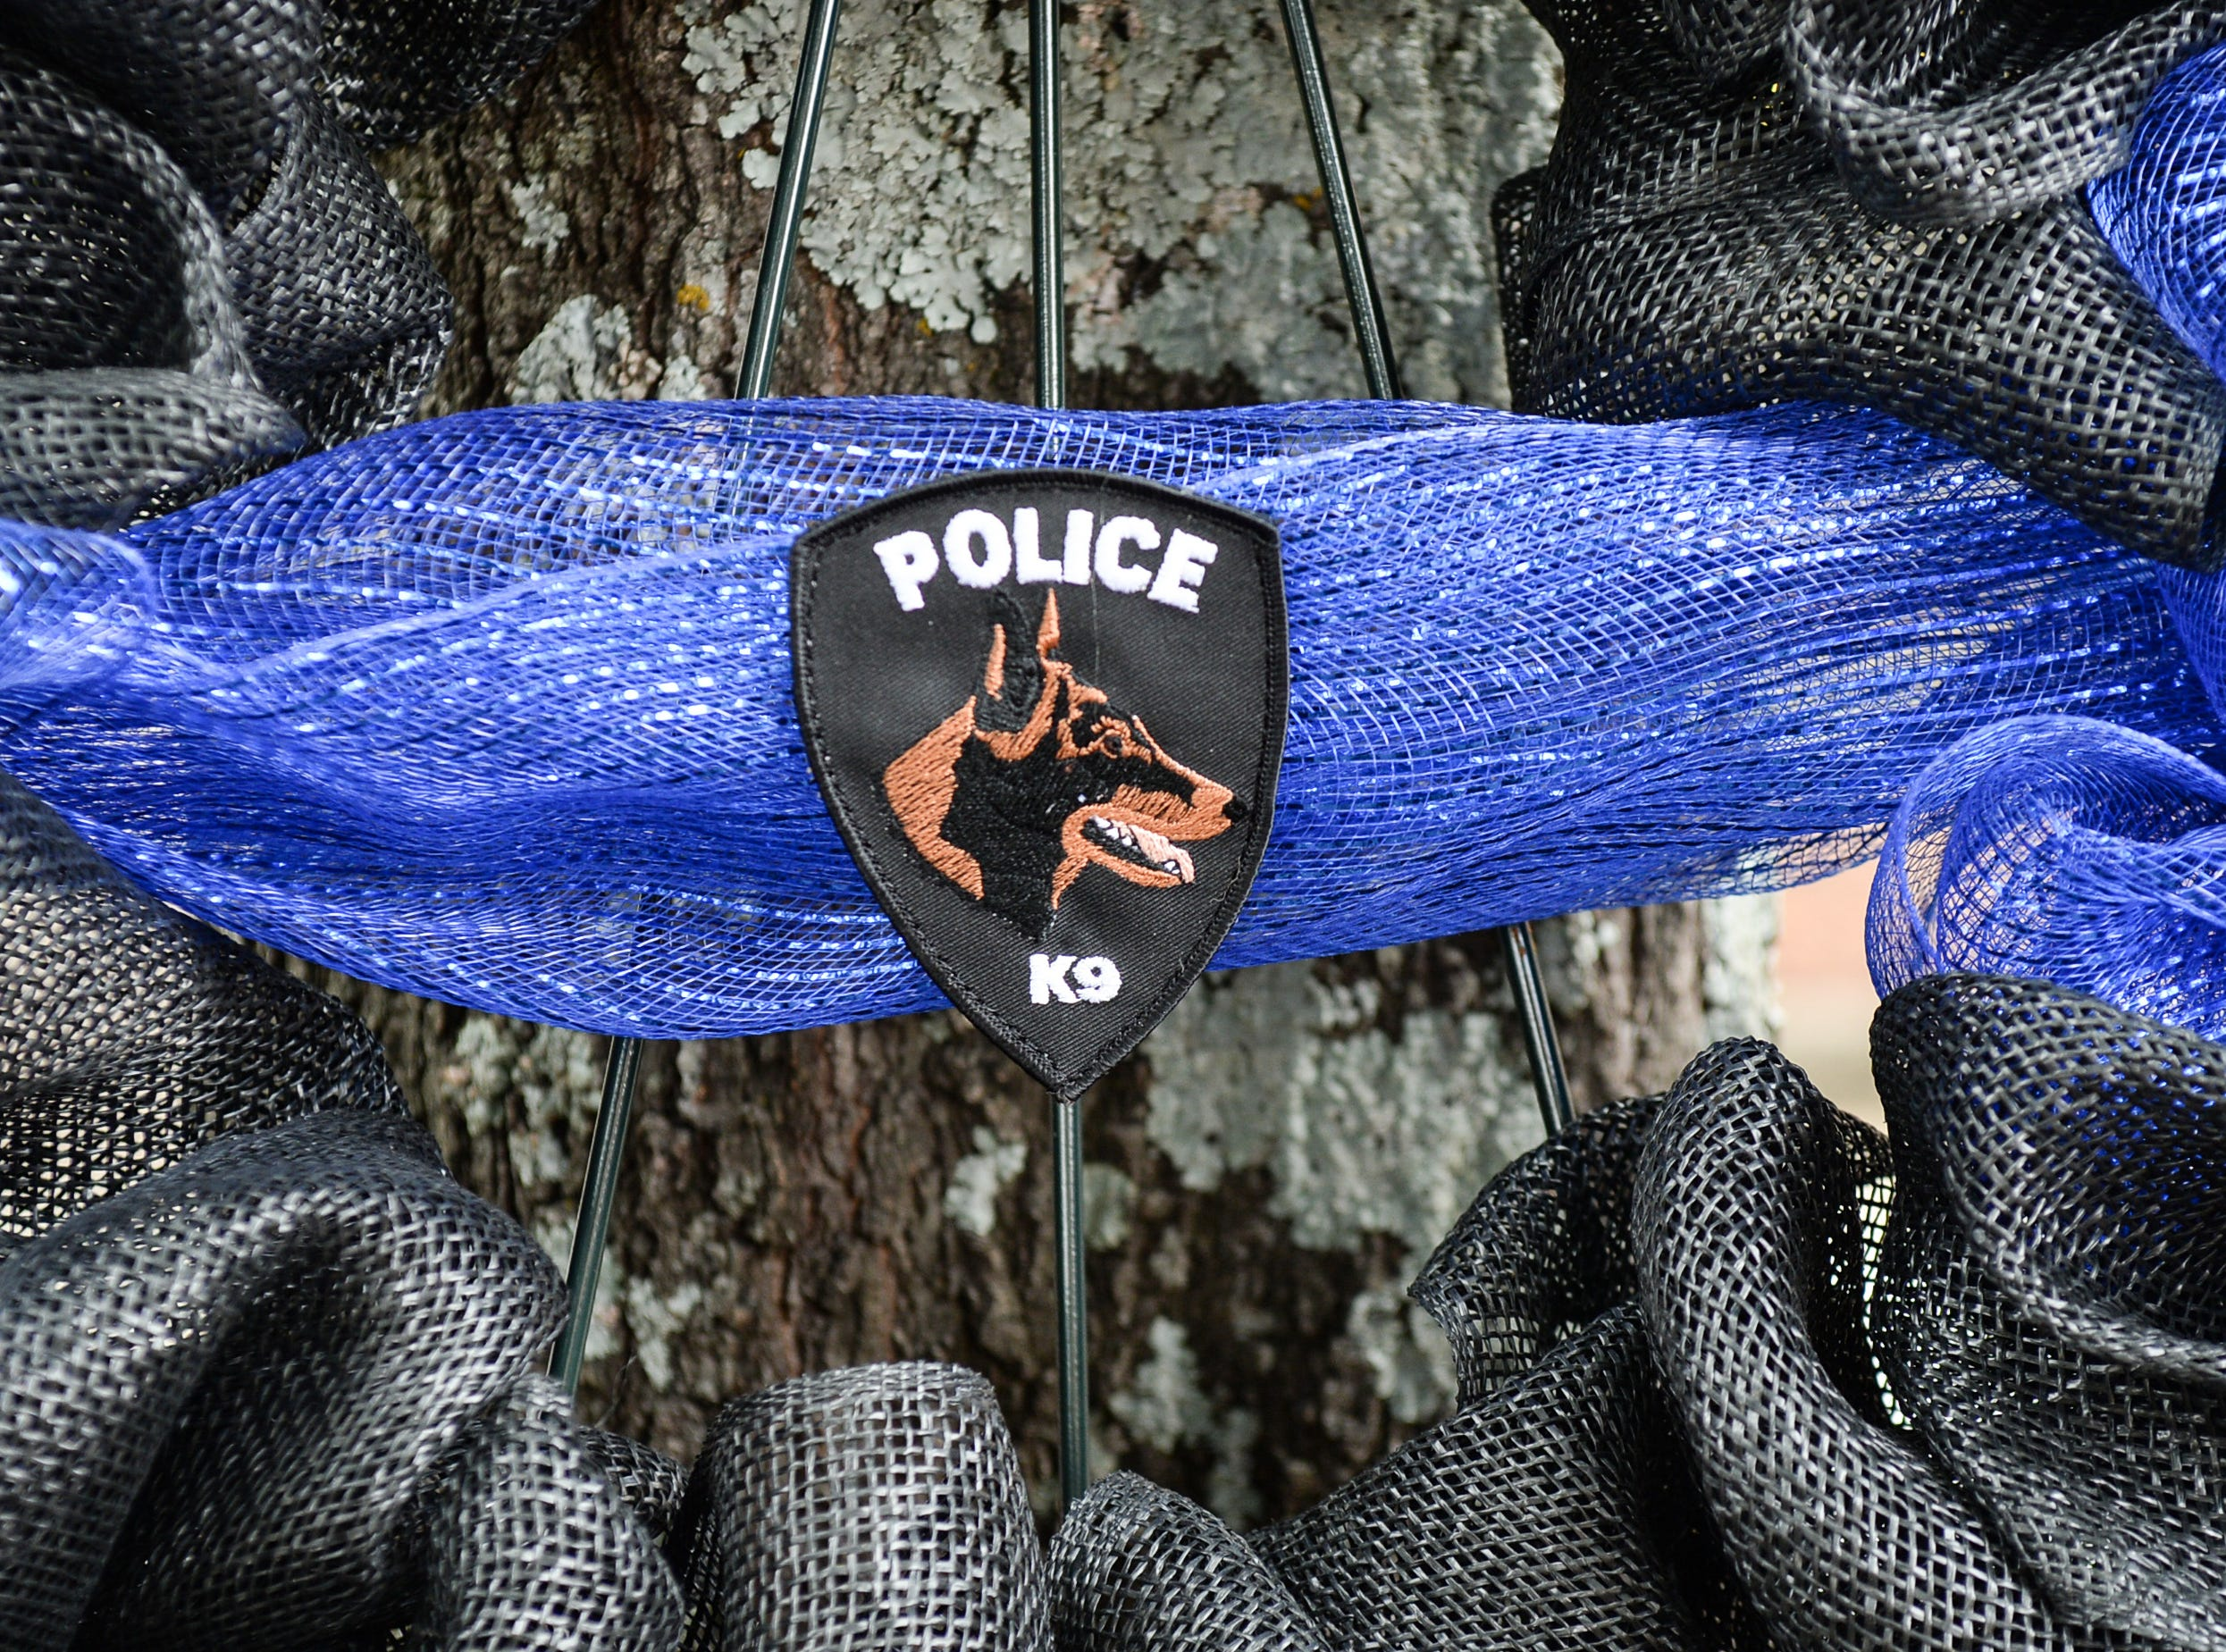 The K-9 Memorial wreath during the 2019 Peace Officer Memorial Service Wednesday May 15, 2019. People attended to help honor the lives of officers lost in the line of duty.